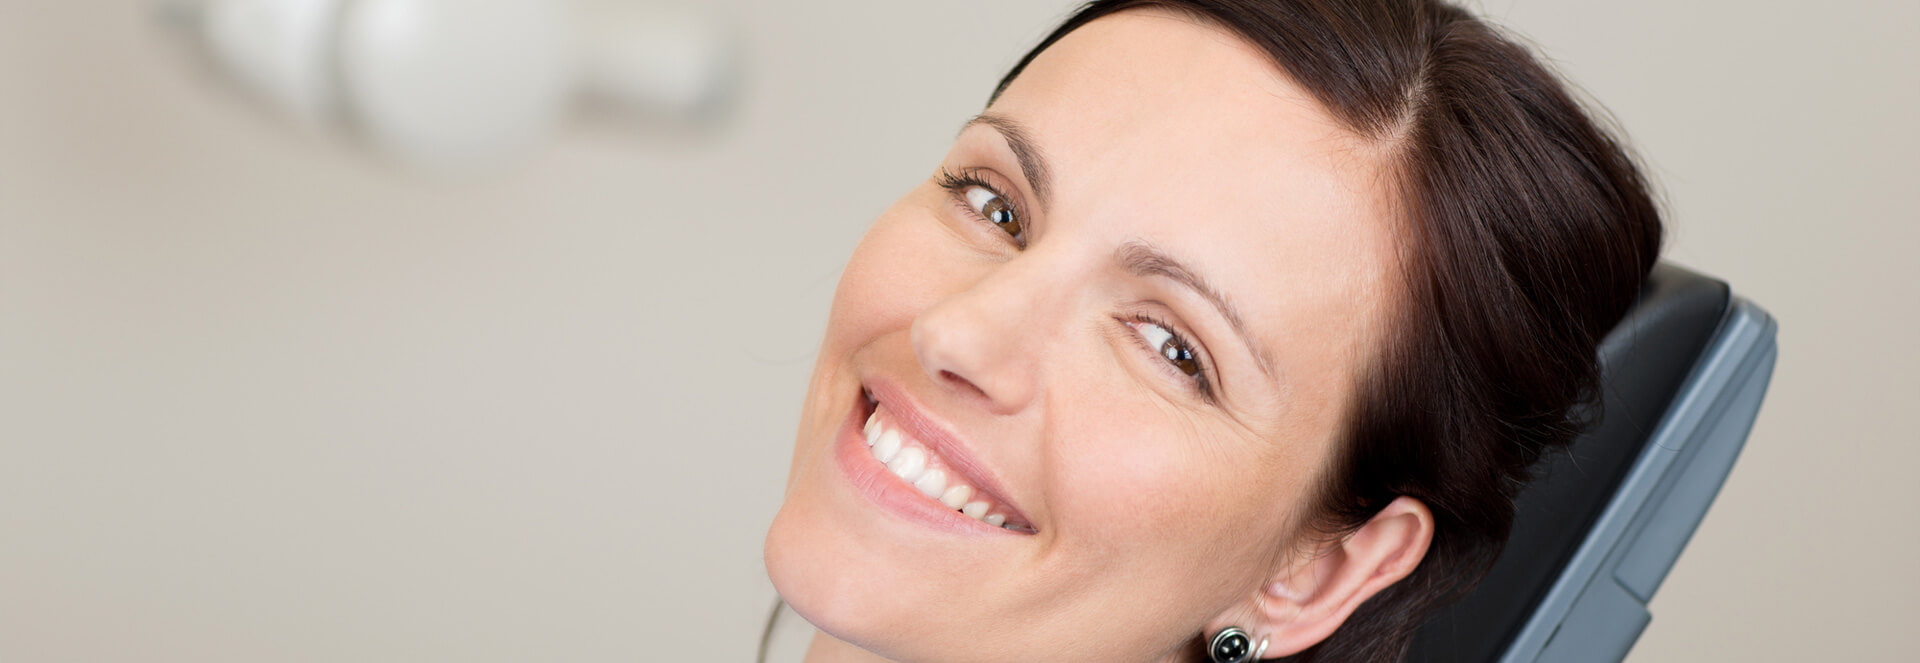 Female patient smiling at the camera about to receive Laser Tissue Removal treatment